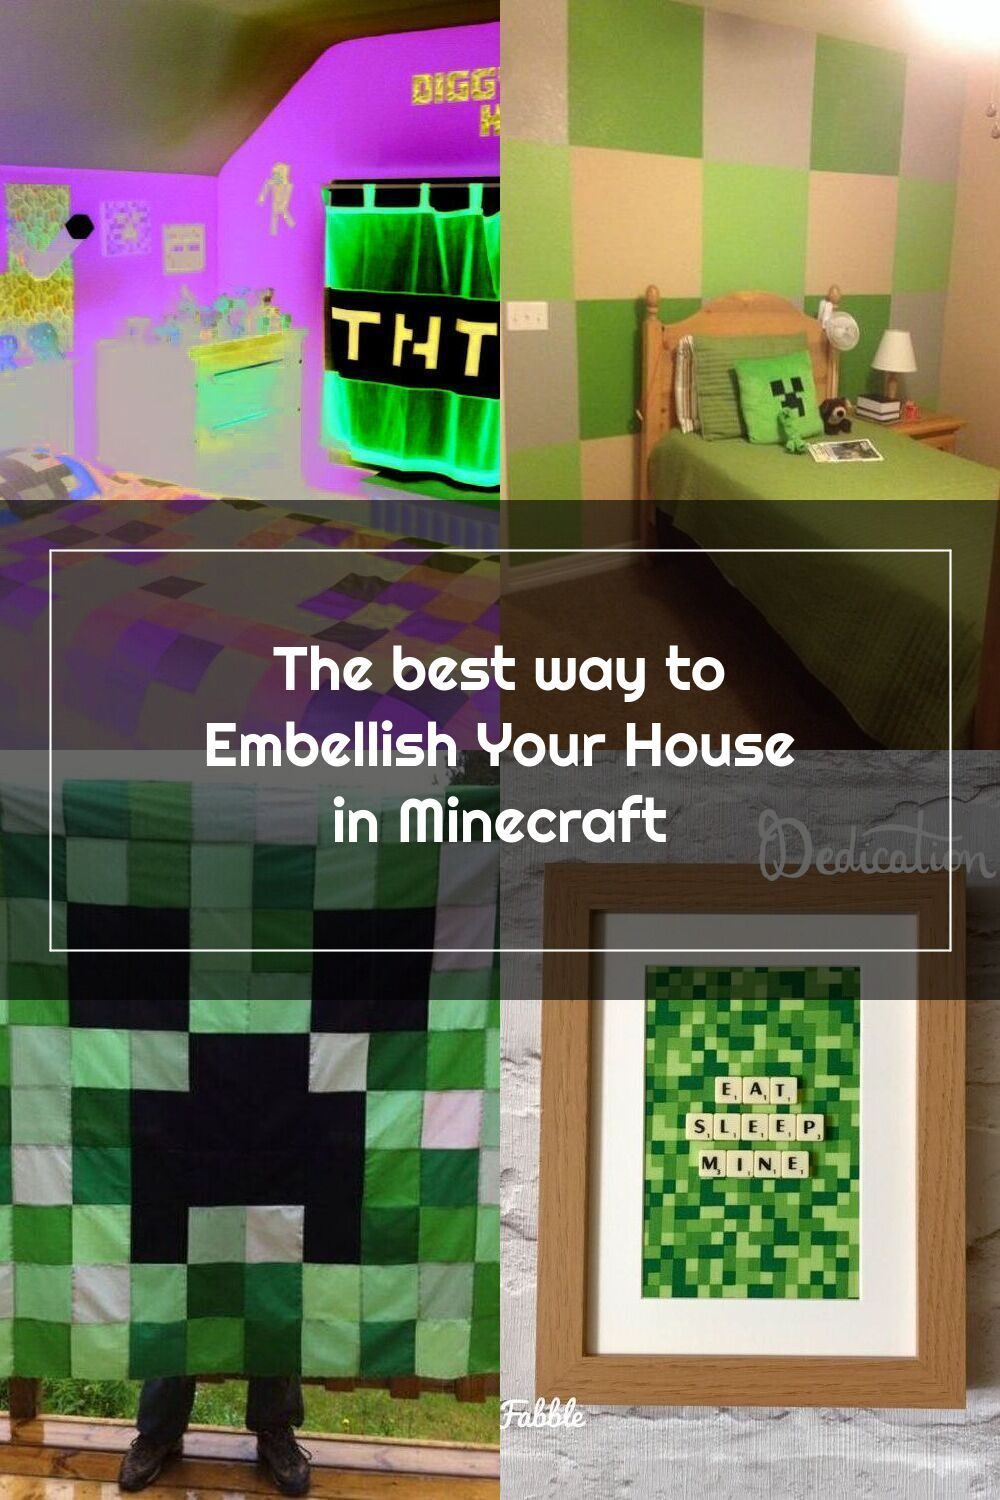 Pretty bedroom ideas in minecraft pe that will blow your ...